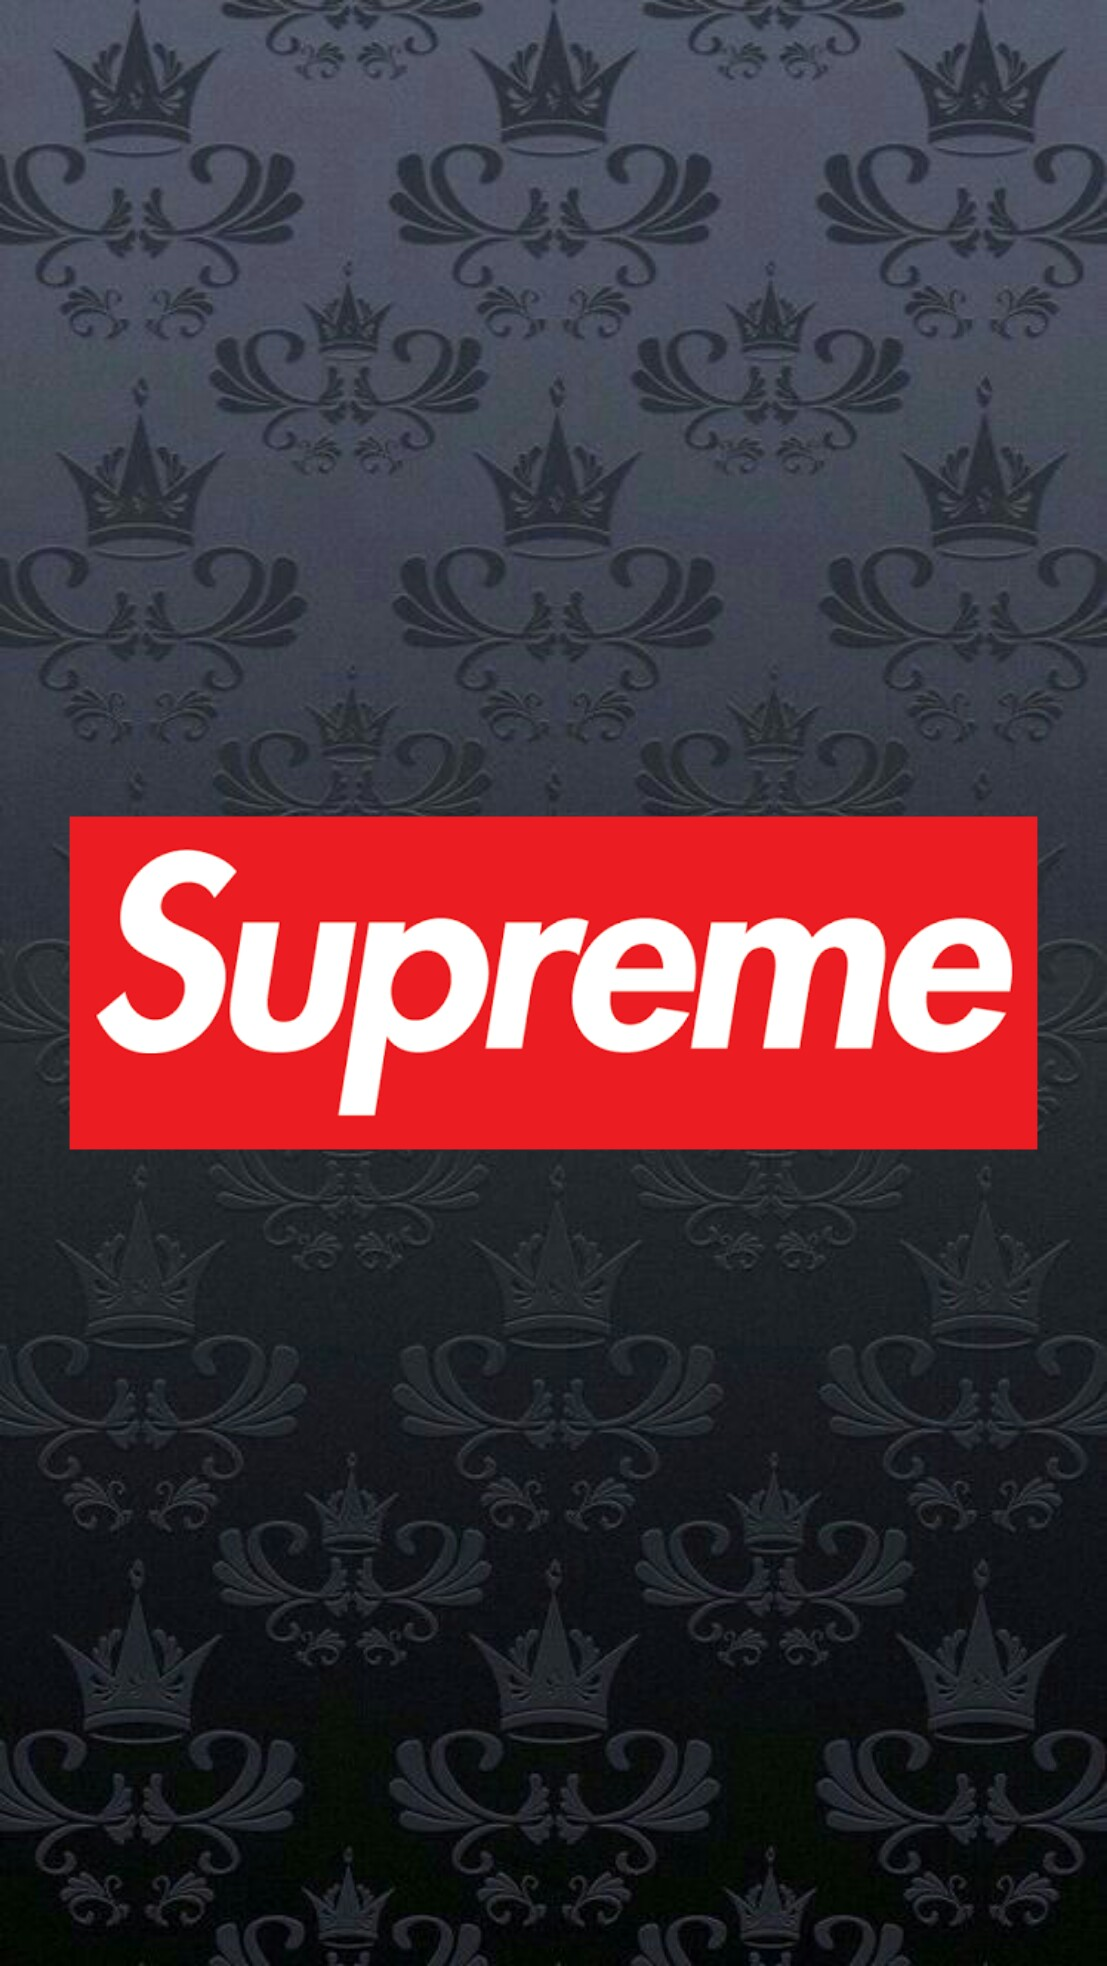 Supreme Floral Wallpaper wwwpixsharkcom   Images 1107x1966